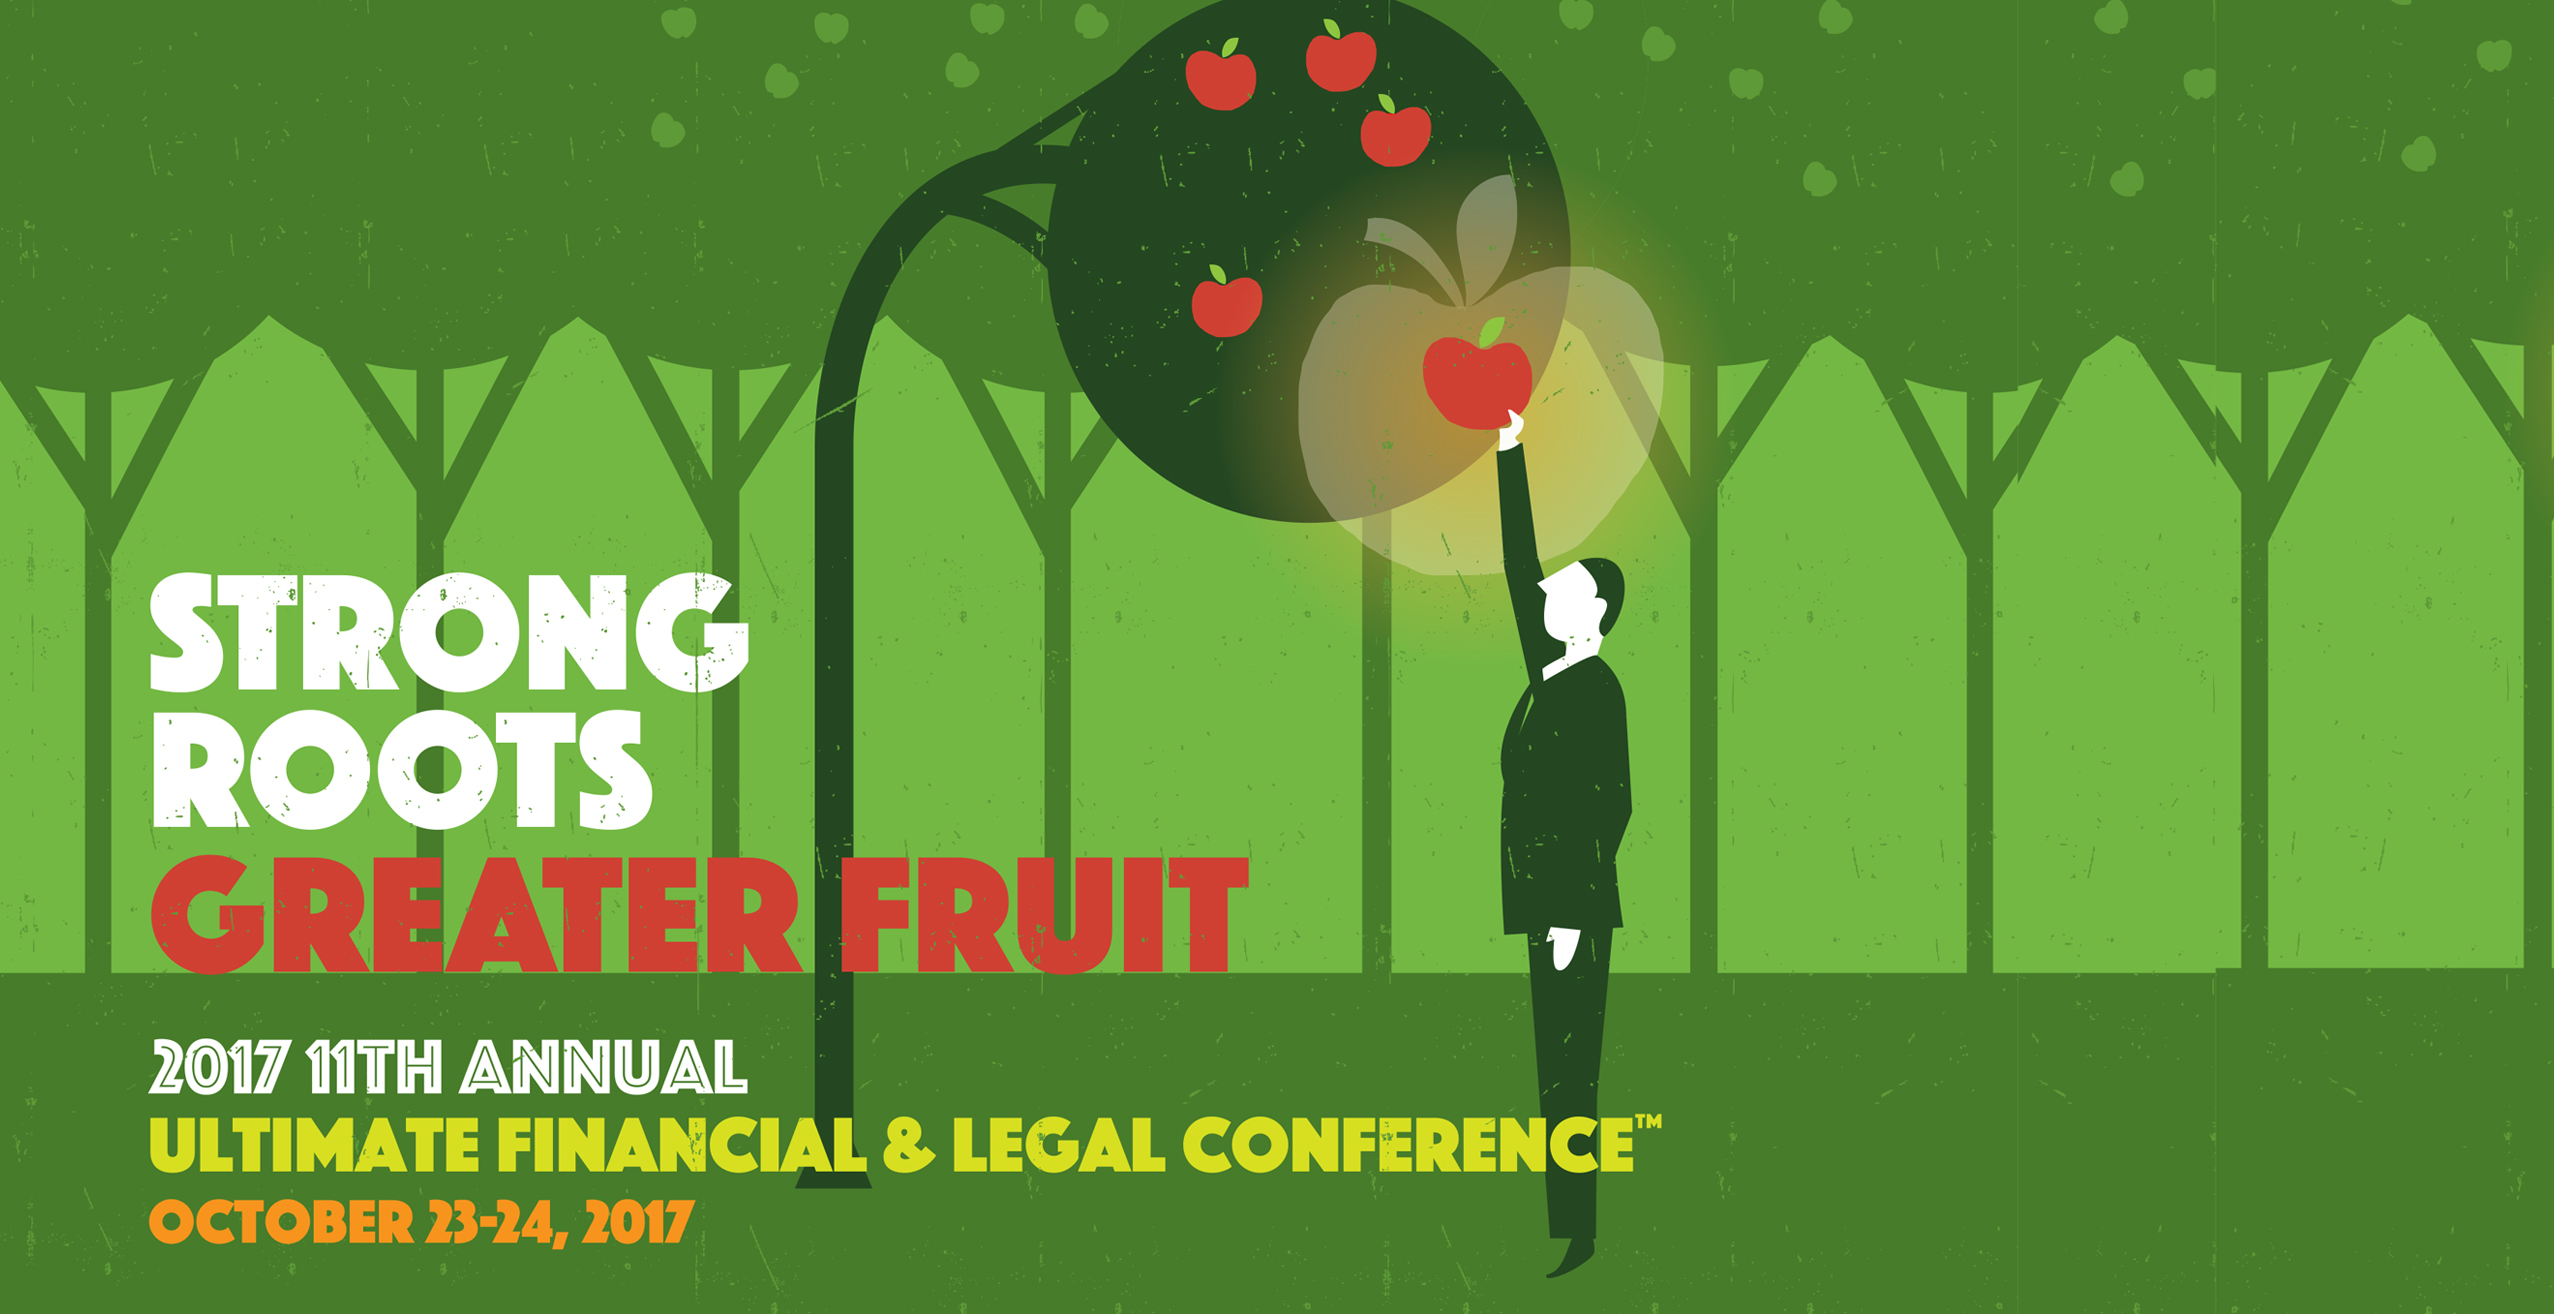 ULTIMATE FINANCIAL AND LEGAL CONFERENCE